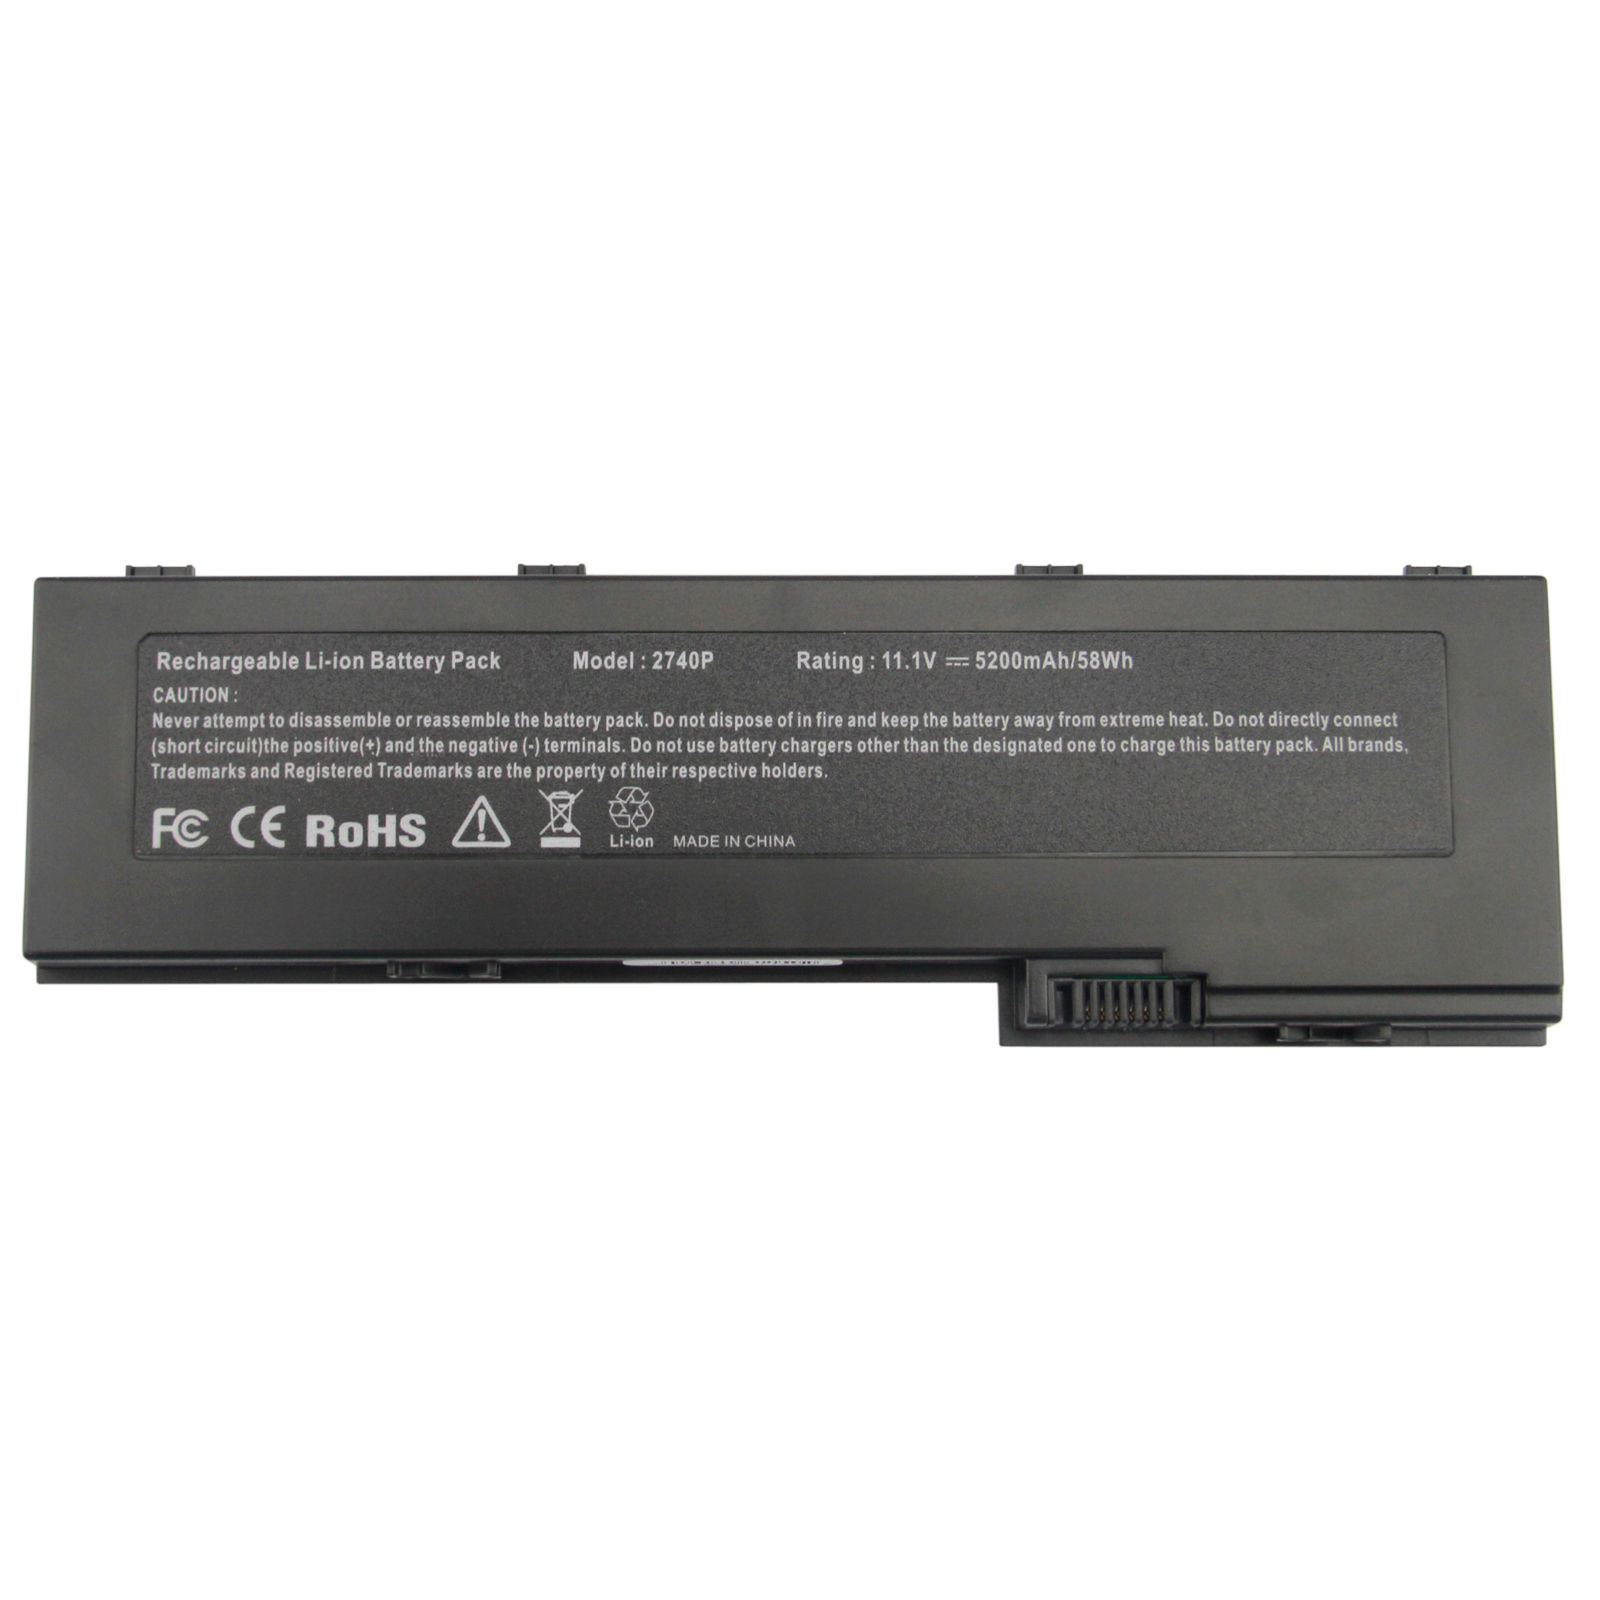 Replacement Hp EliteBook 2760p Tablet PC Battery